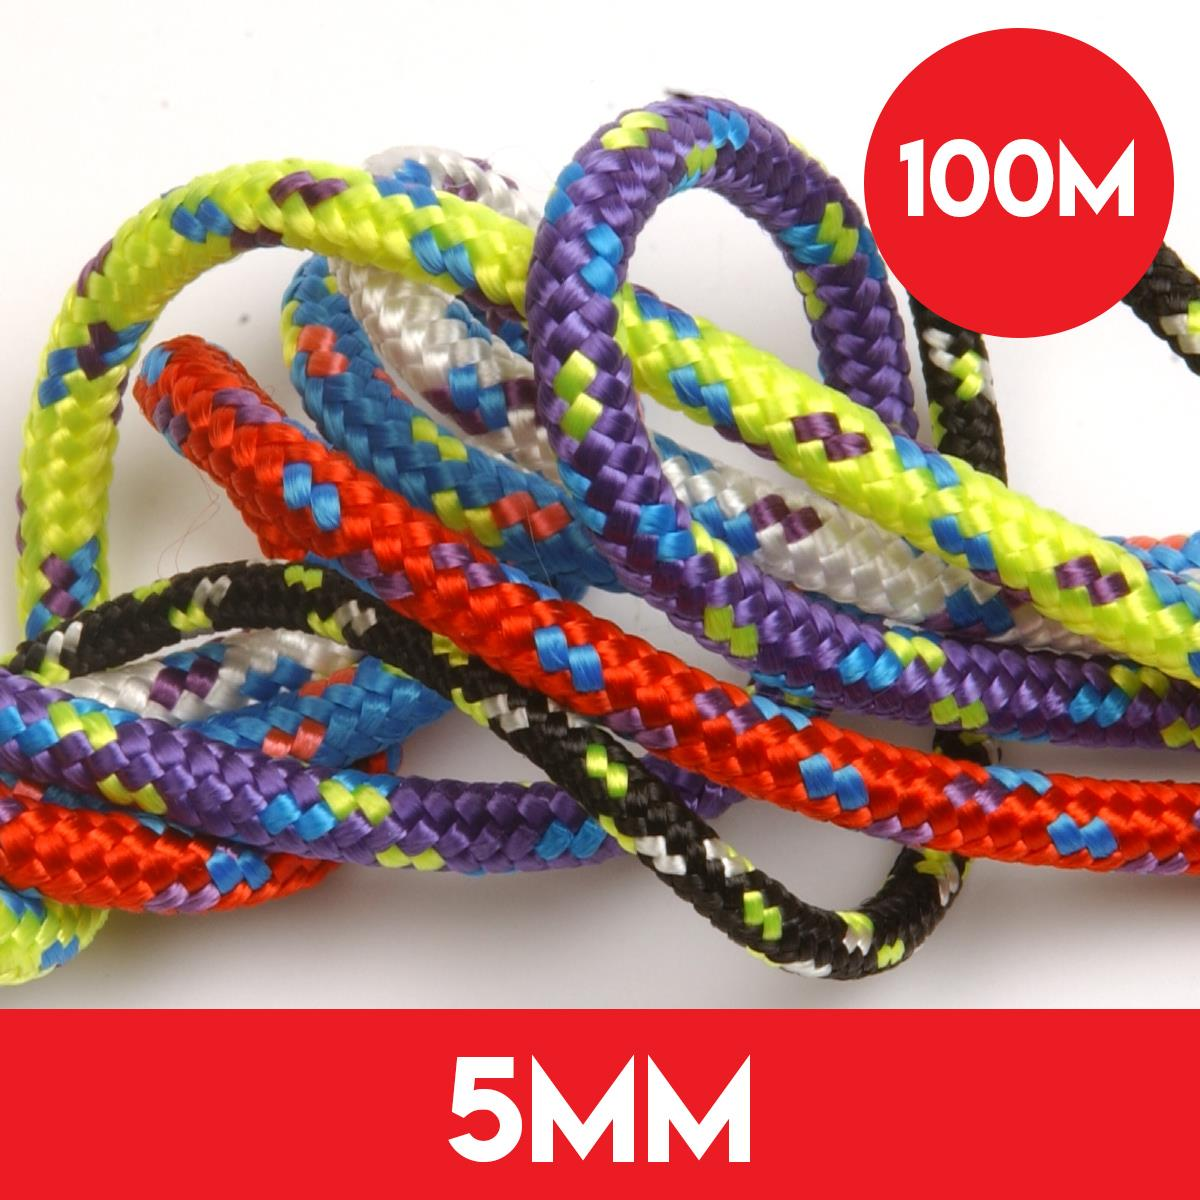 100m Reel of 5mm Kingfisher Evolution Performance Rope